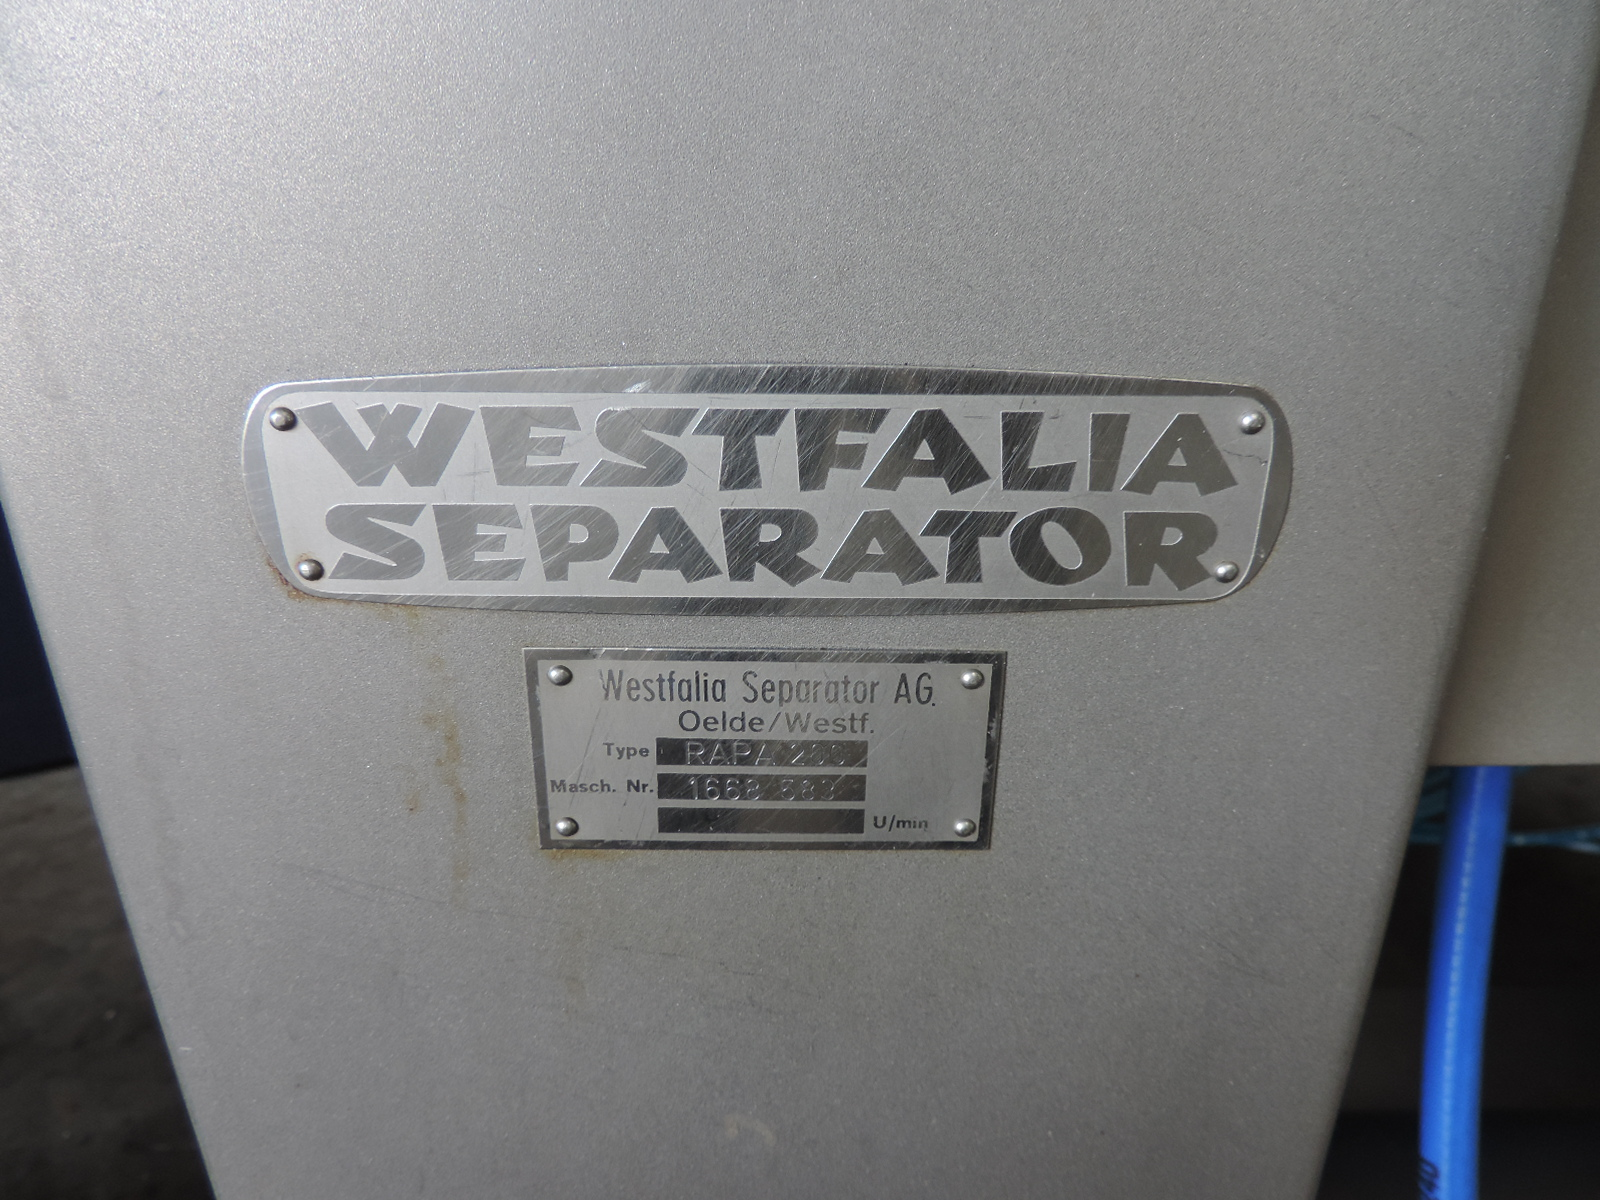 Westfalia RAPA 200 Separator accessories